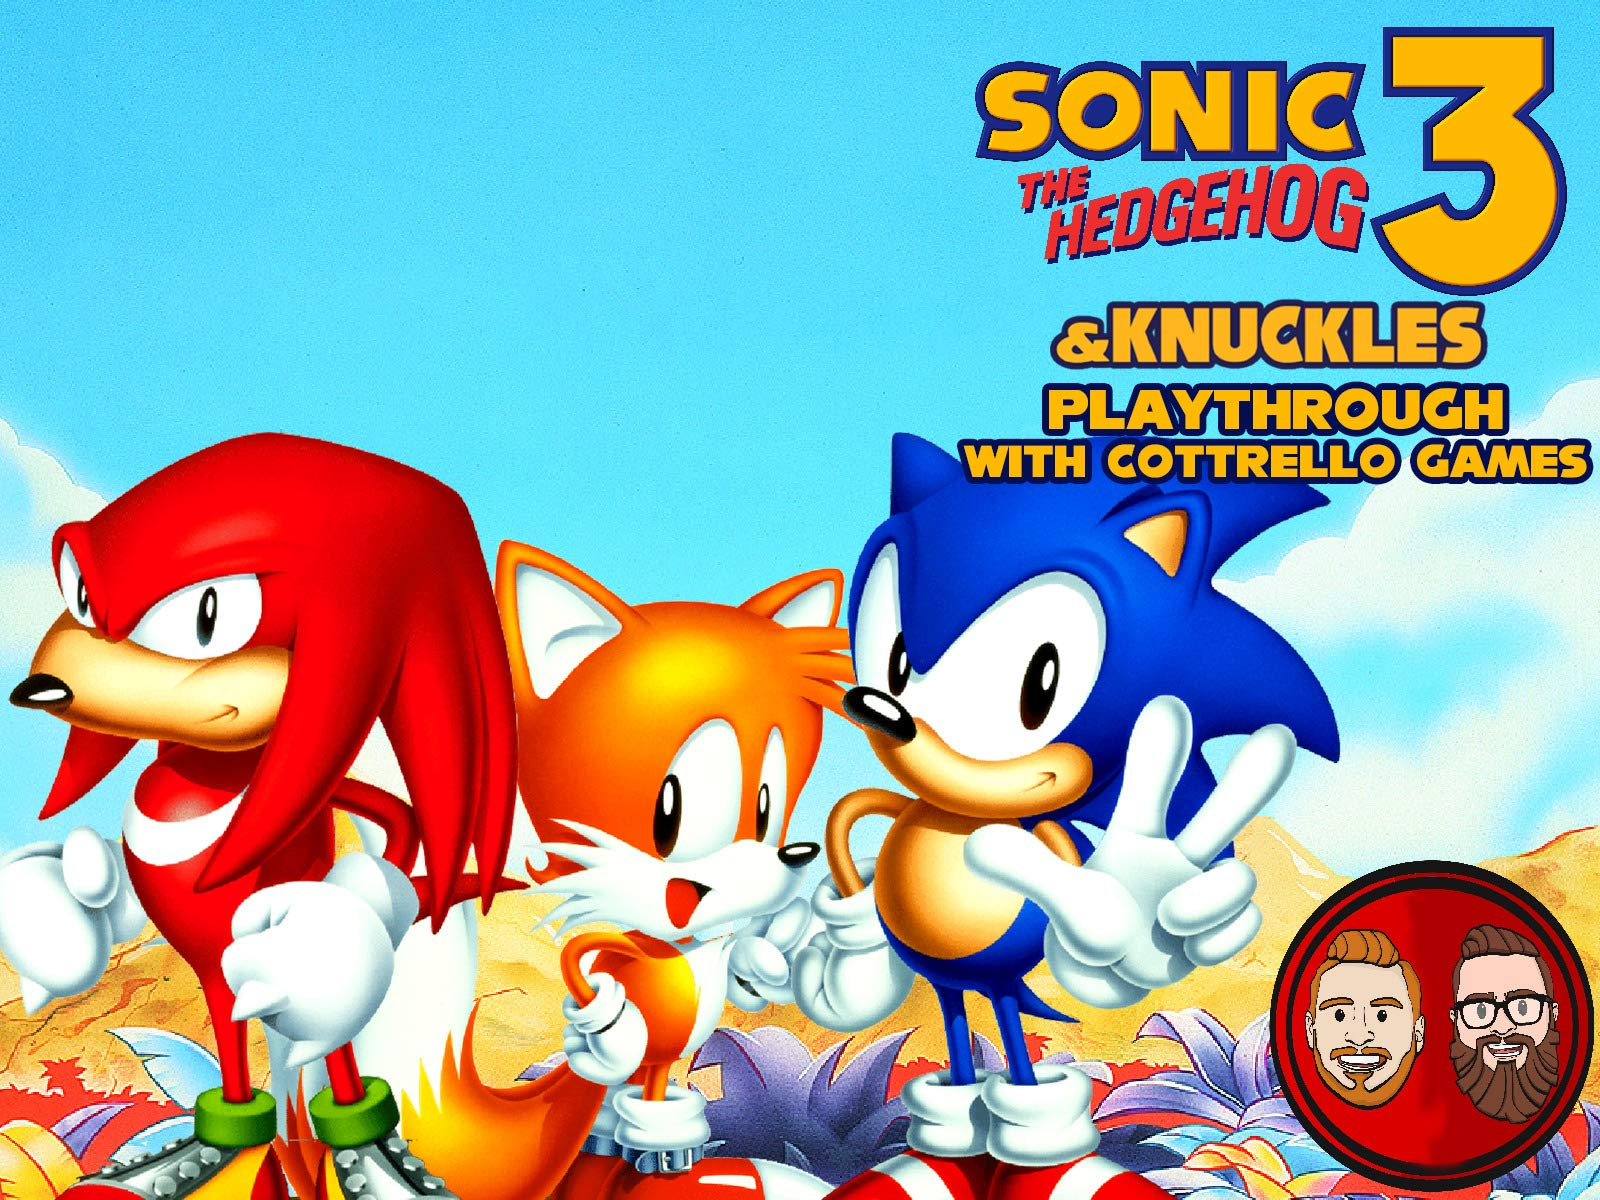 Watch Sonic The Hedgehog 3 Knuckles Playthrough With Cottrello Games On Amazon Prime Video Uk Newonamzprimeuk